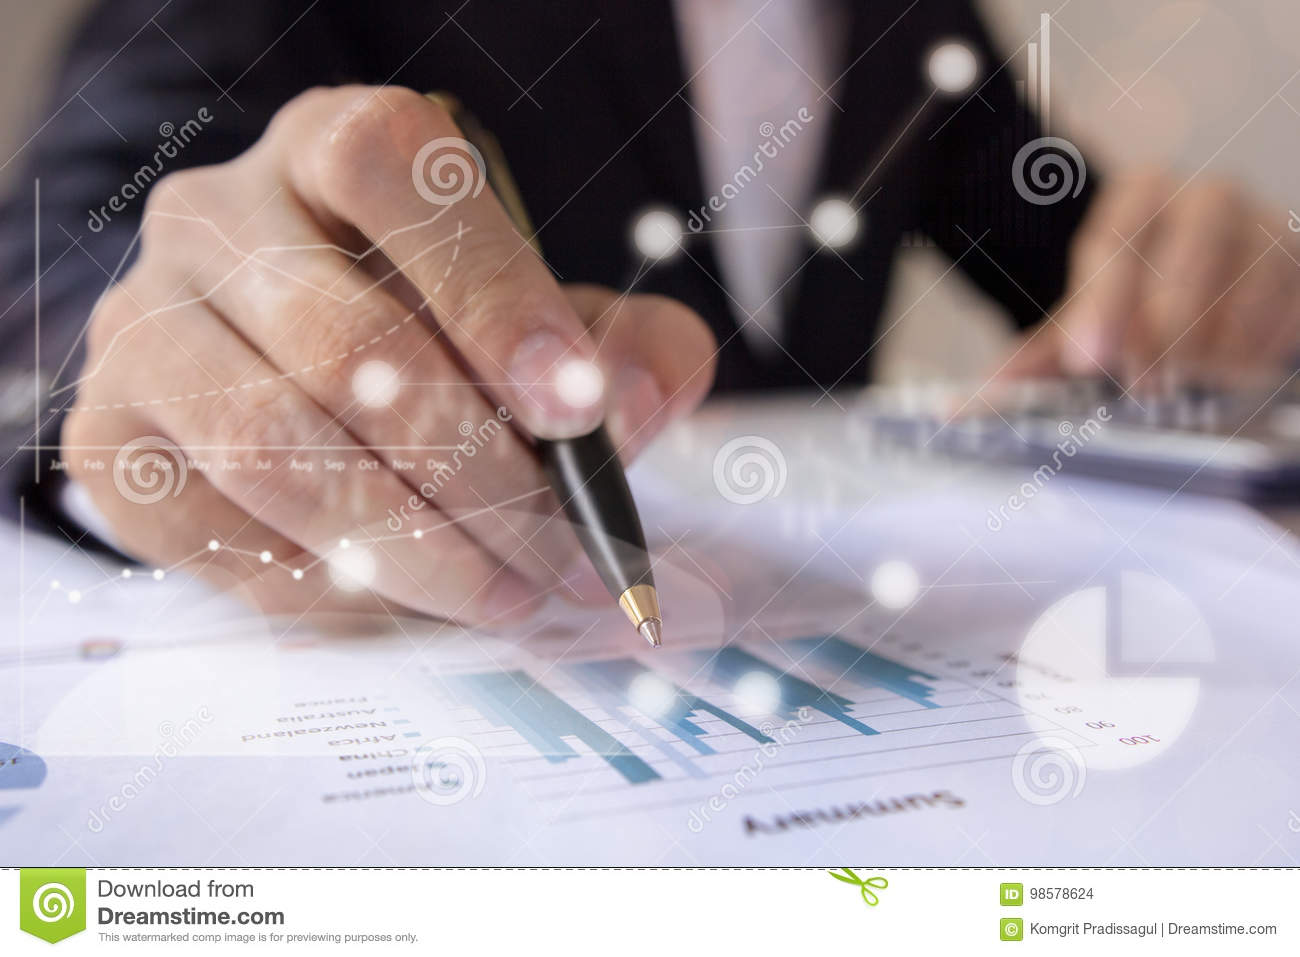 Businessmen working with graph data at office, Finance managers task, Concept business and financial investment